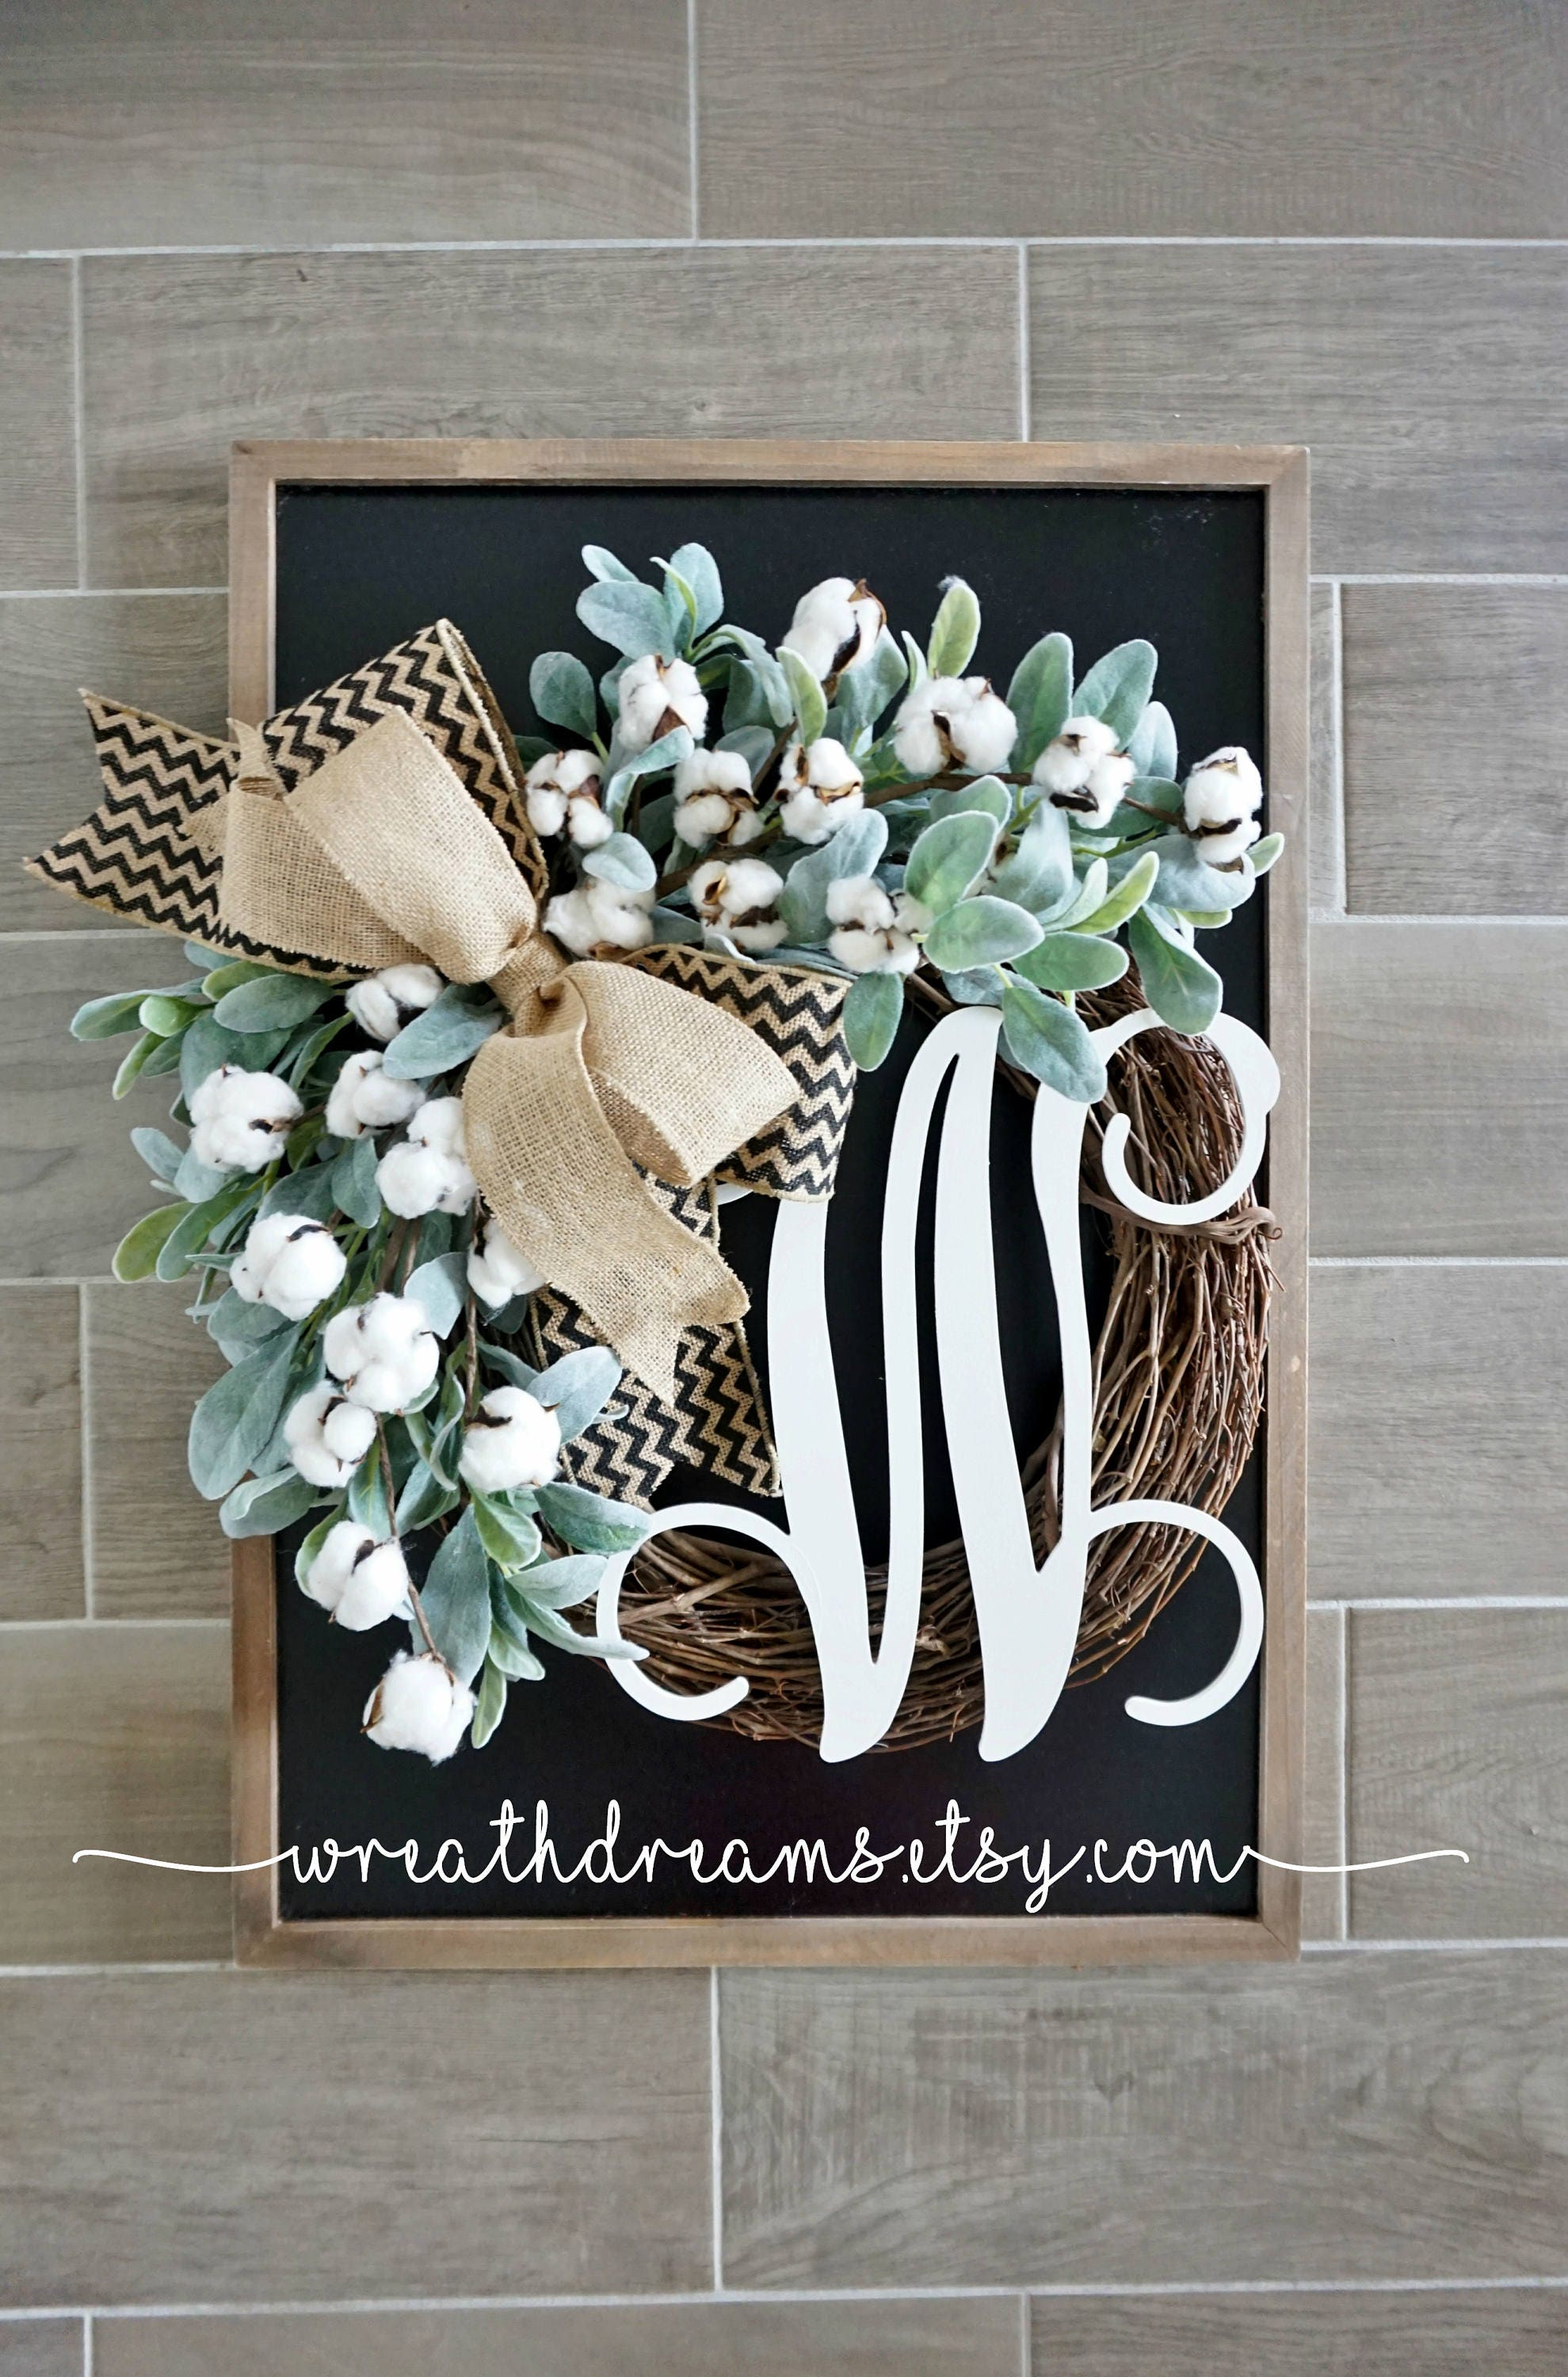 Cotton Lambs Ear Grapevine Wreath Year Round Wreath Spring Wreath Summer Wreath Door Wreath Grapevine Wreath